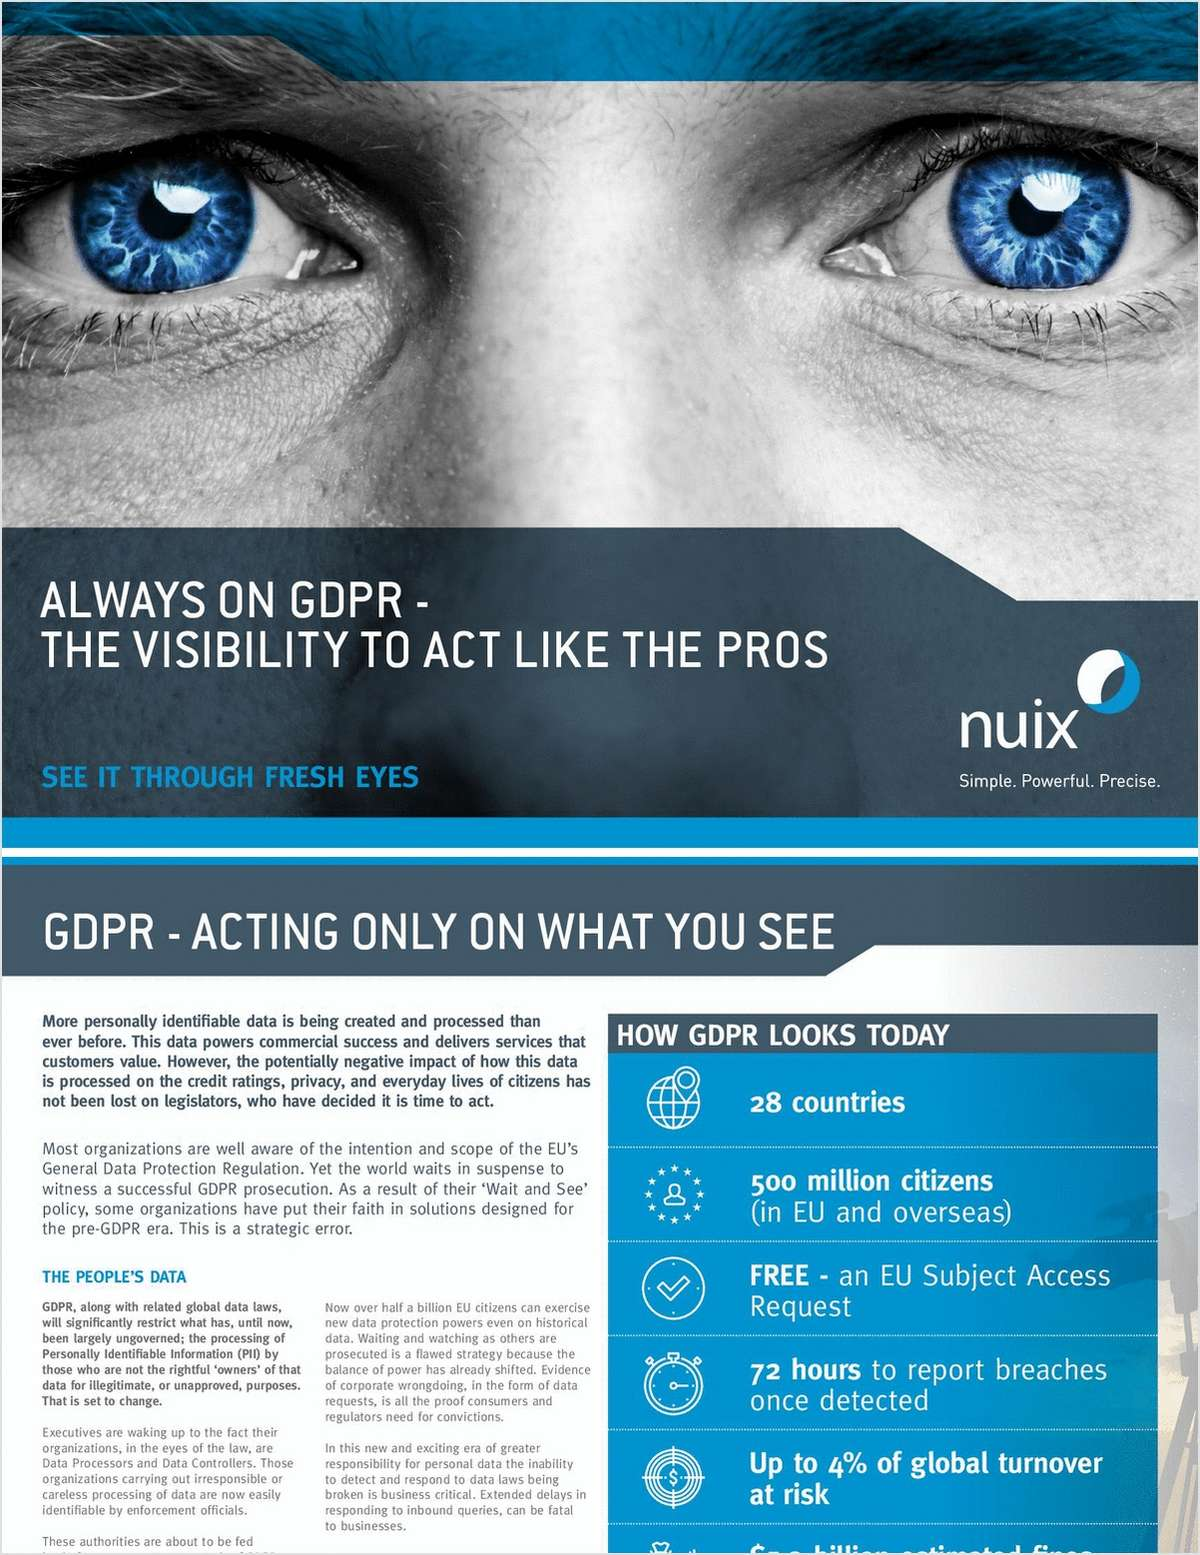 GDPR: Always On. Gain Insight on How to Act Like the Pros